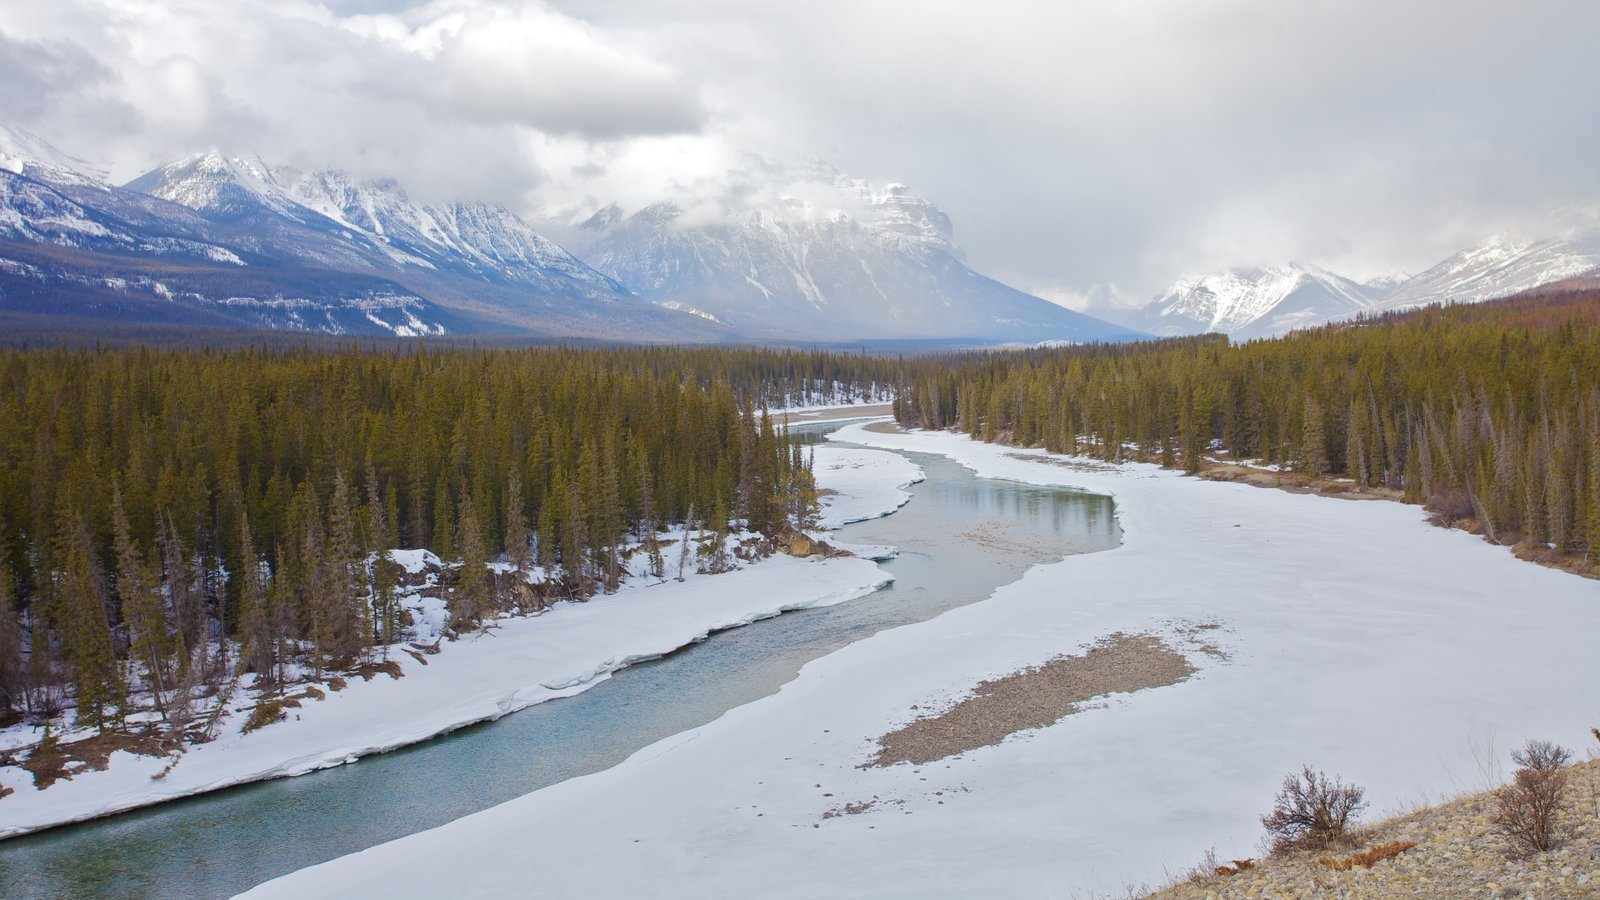 Icefields Parkway which includes tranquil scenes, landscape views and snow